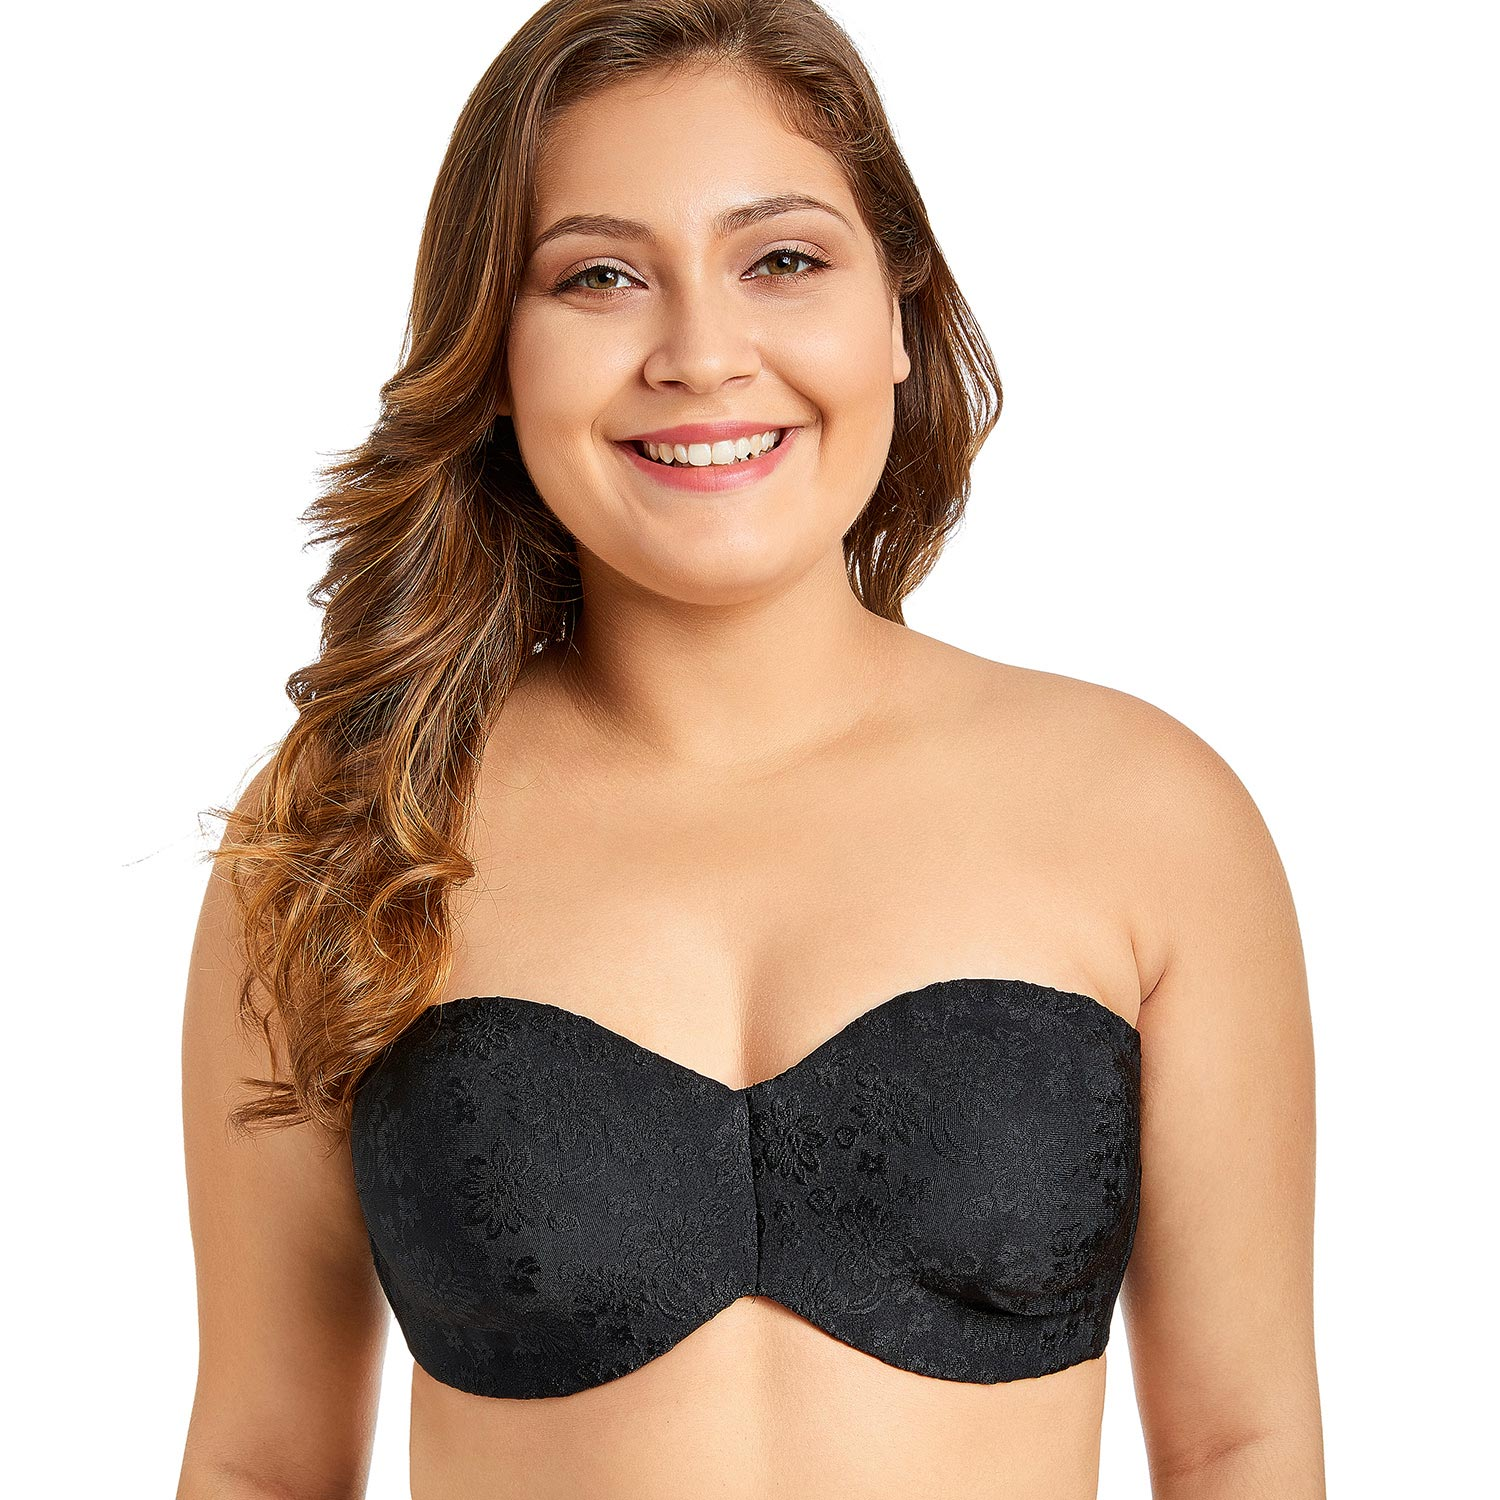 Women's Multitway Floral Jacquard Non-padded Underwire Strapless Bra